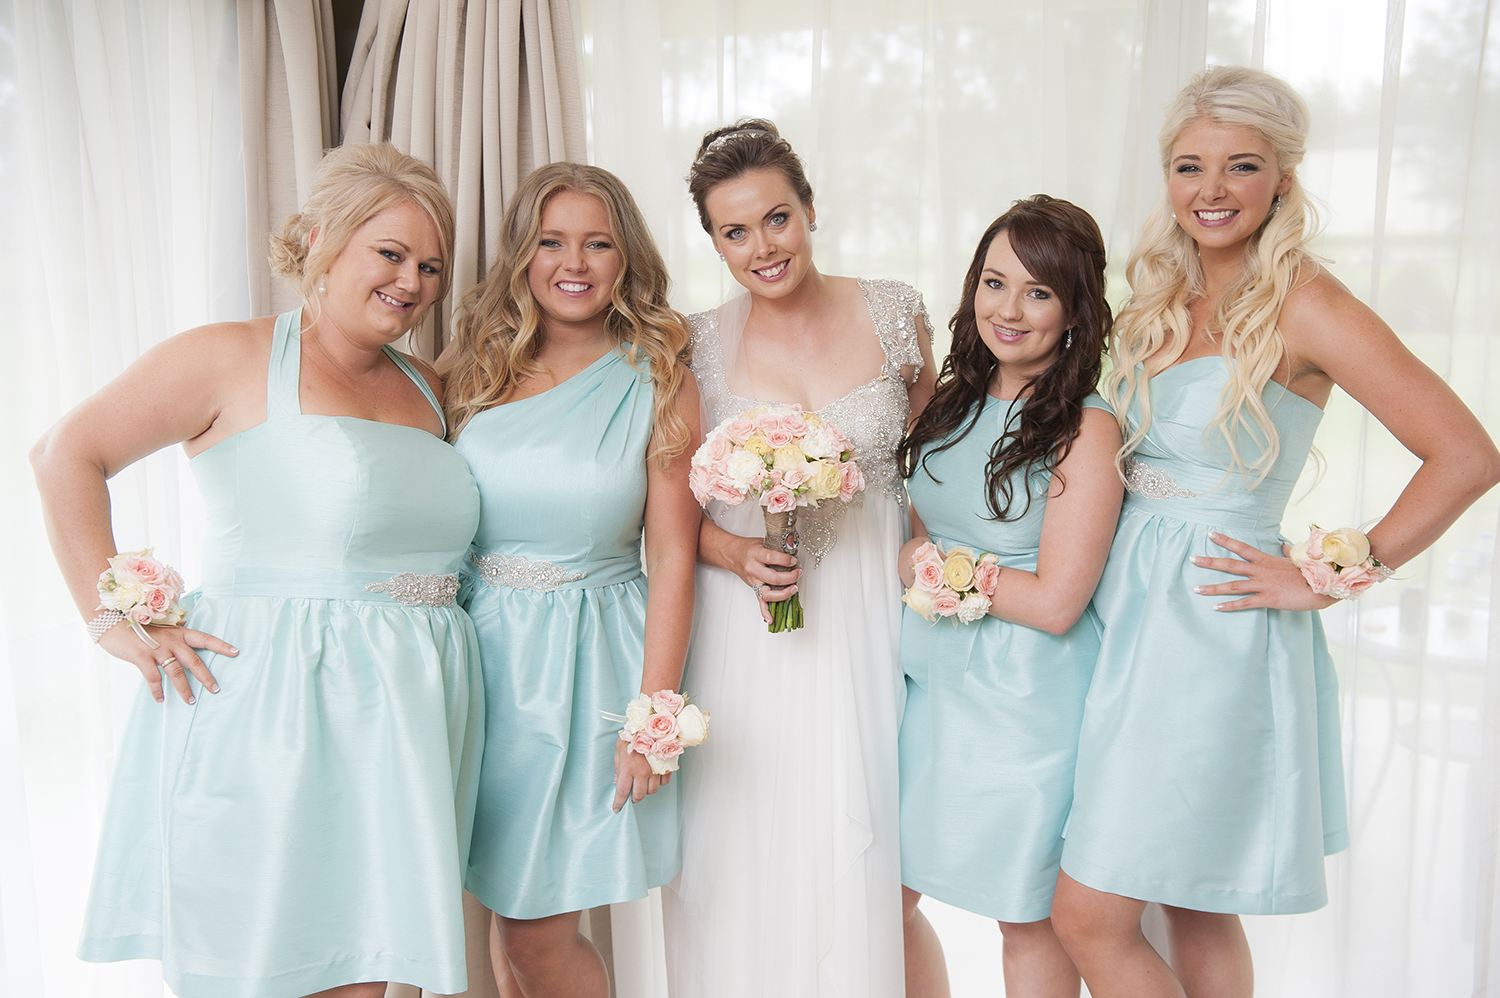 Our Wedding0256.jpg